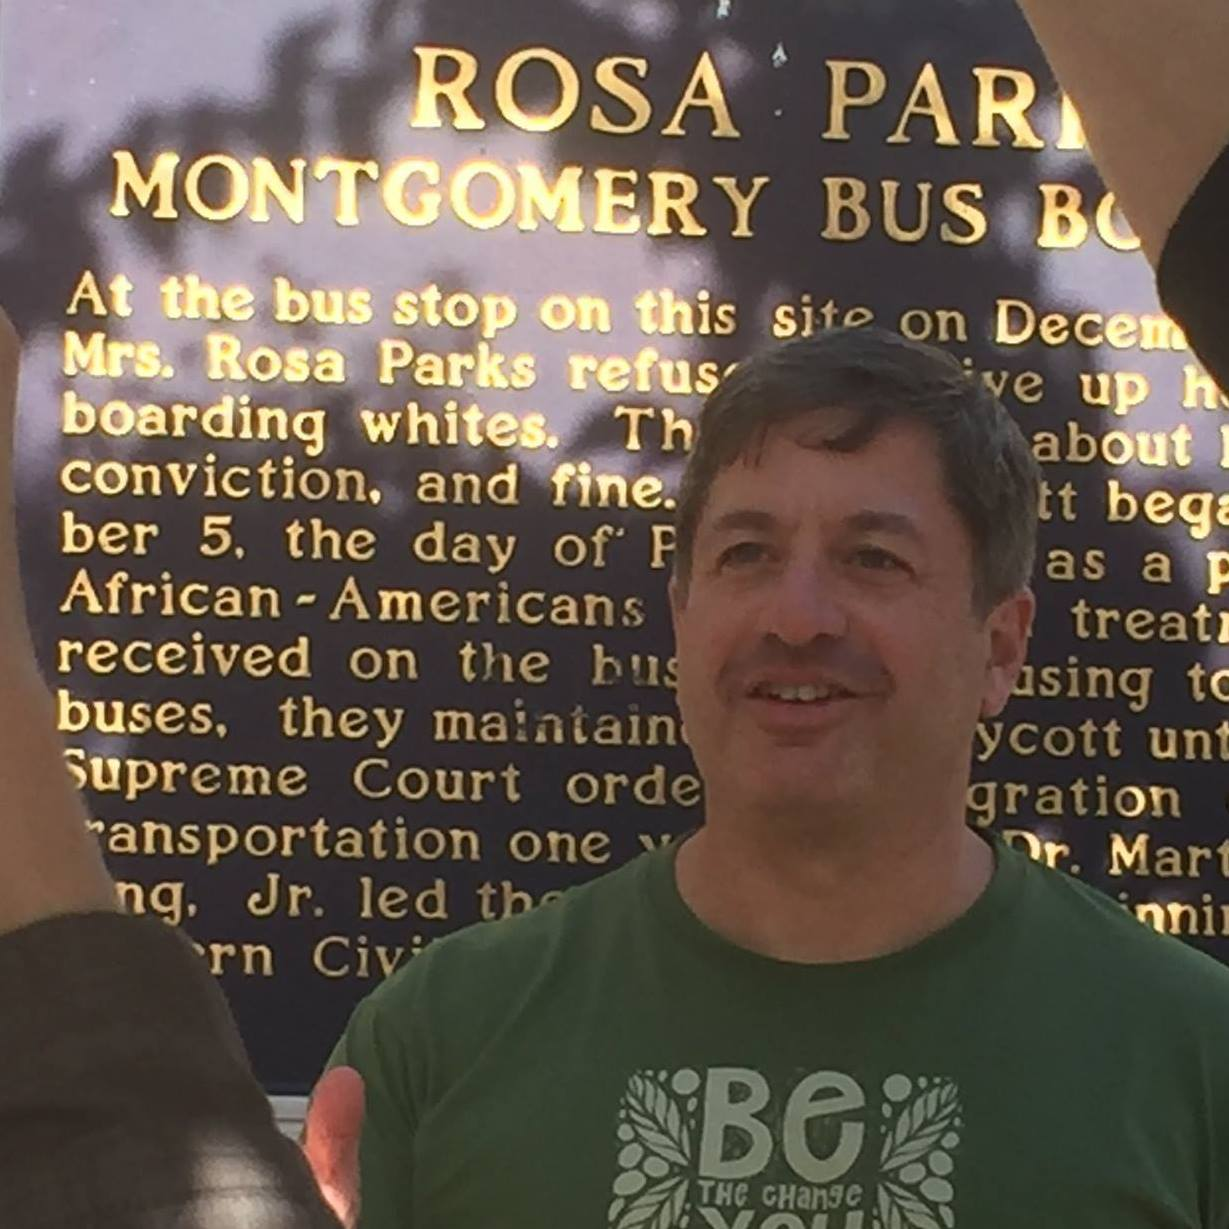 BP in front of Rosa Parks.jpg